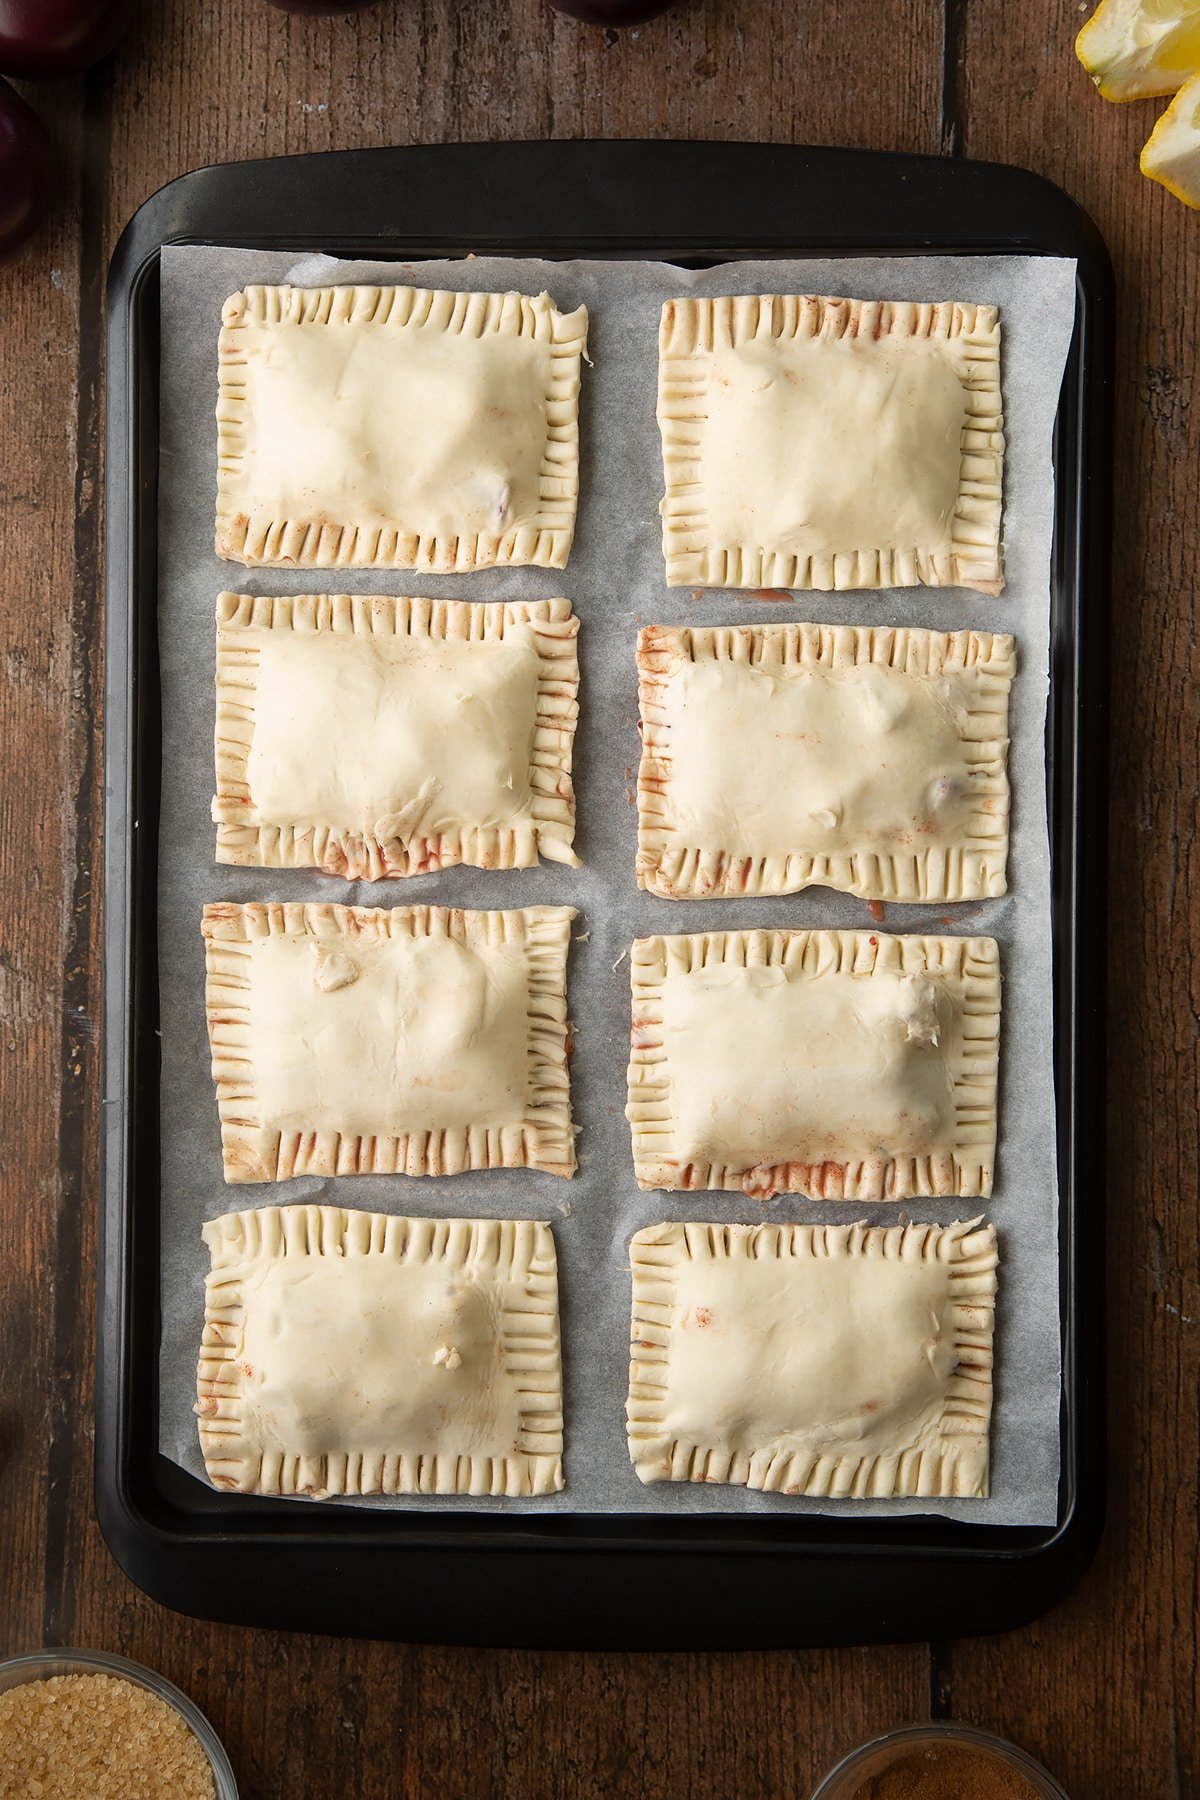 Puff pastry parcels on a baking paper lined tray. Any holes have been repaired with a spare bit of pastry. Ingredients to make a plum pastry recipe surround the tray.